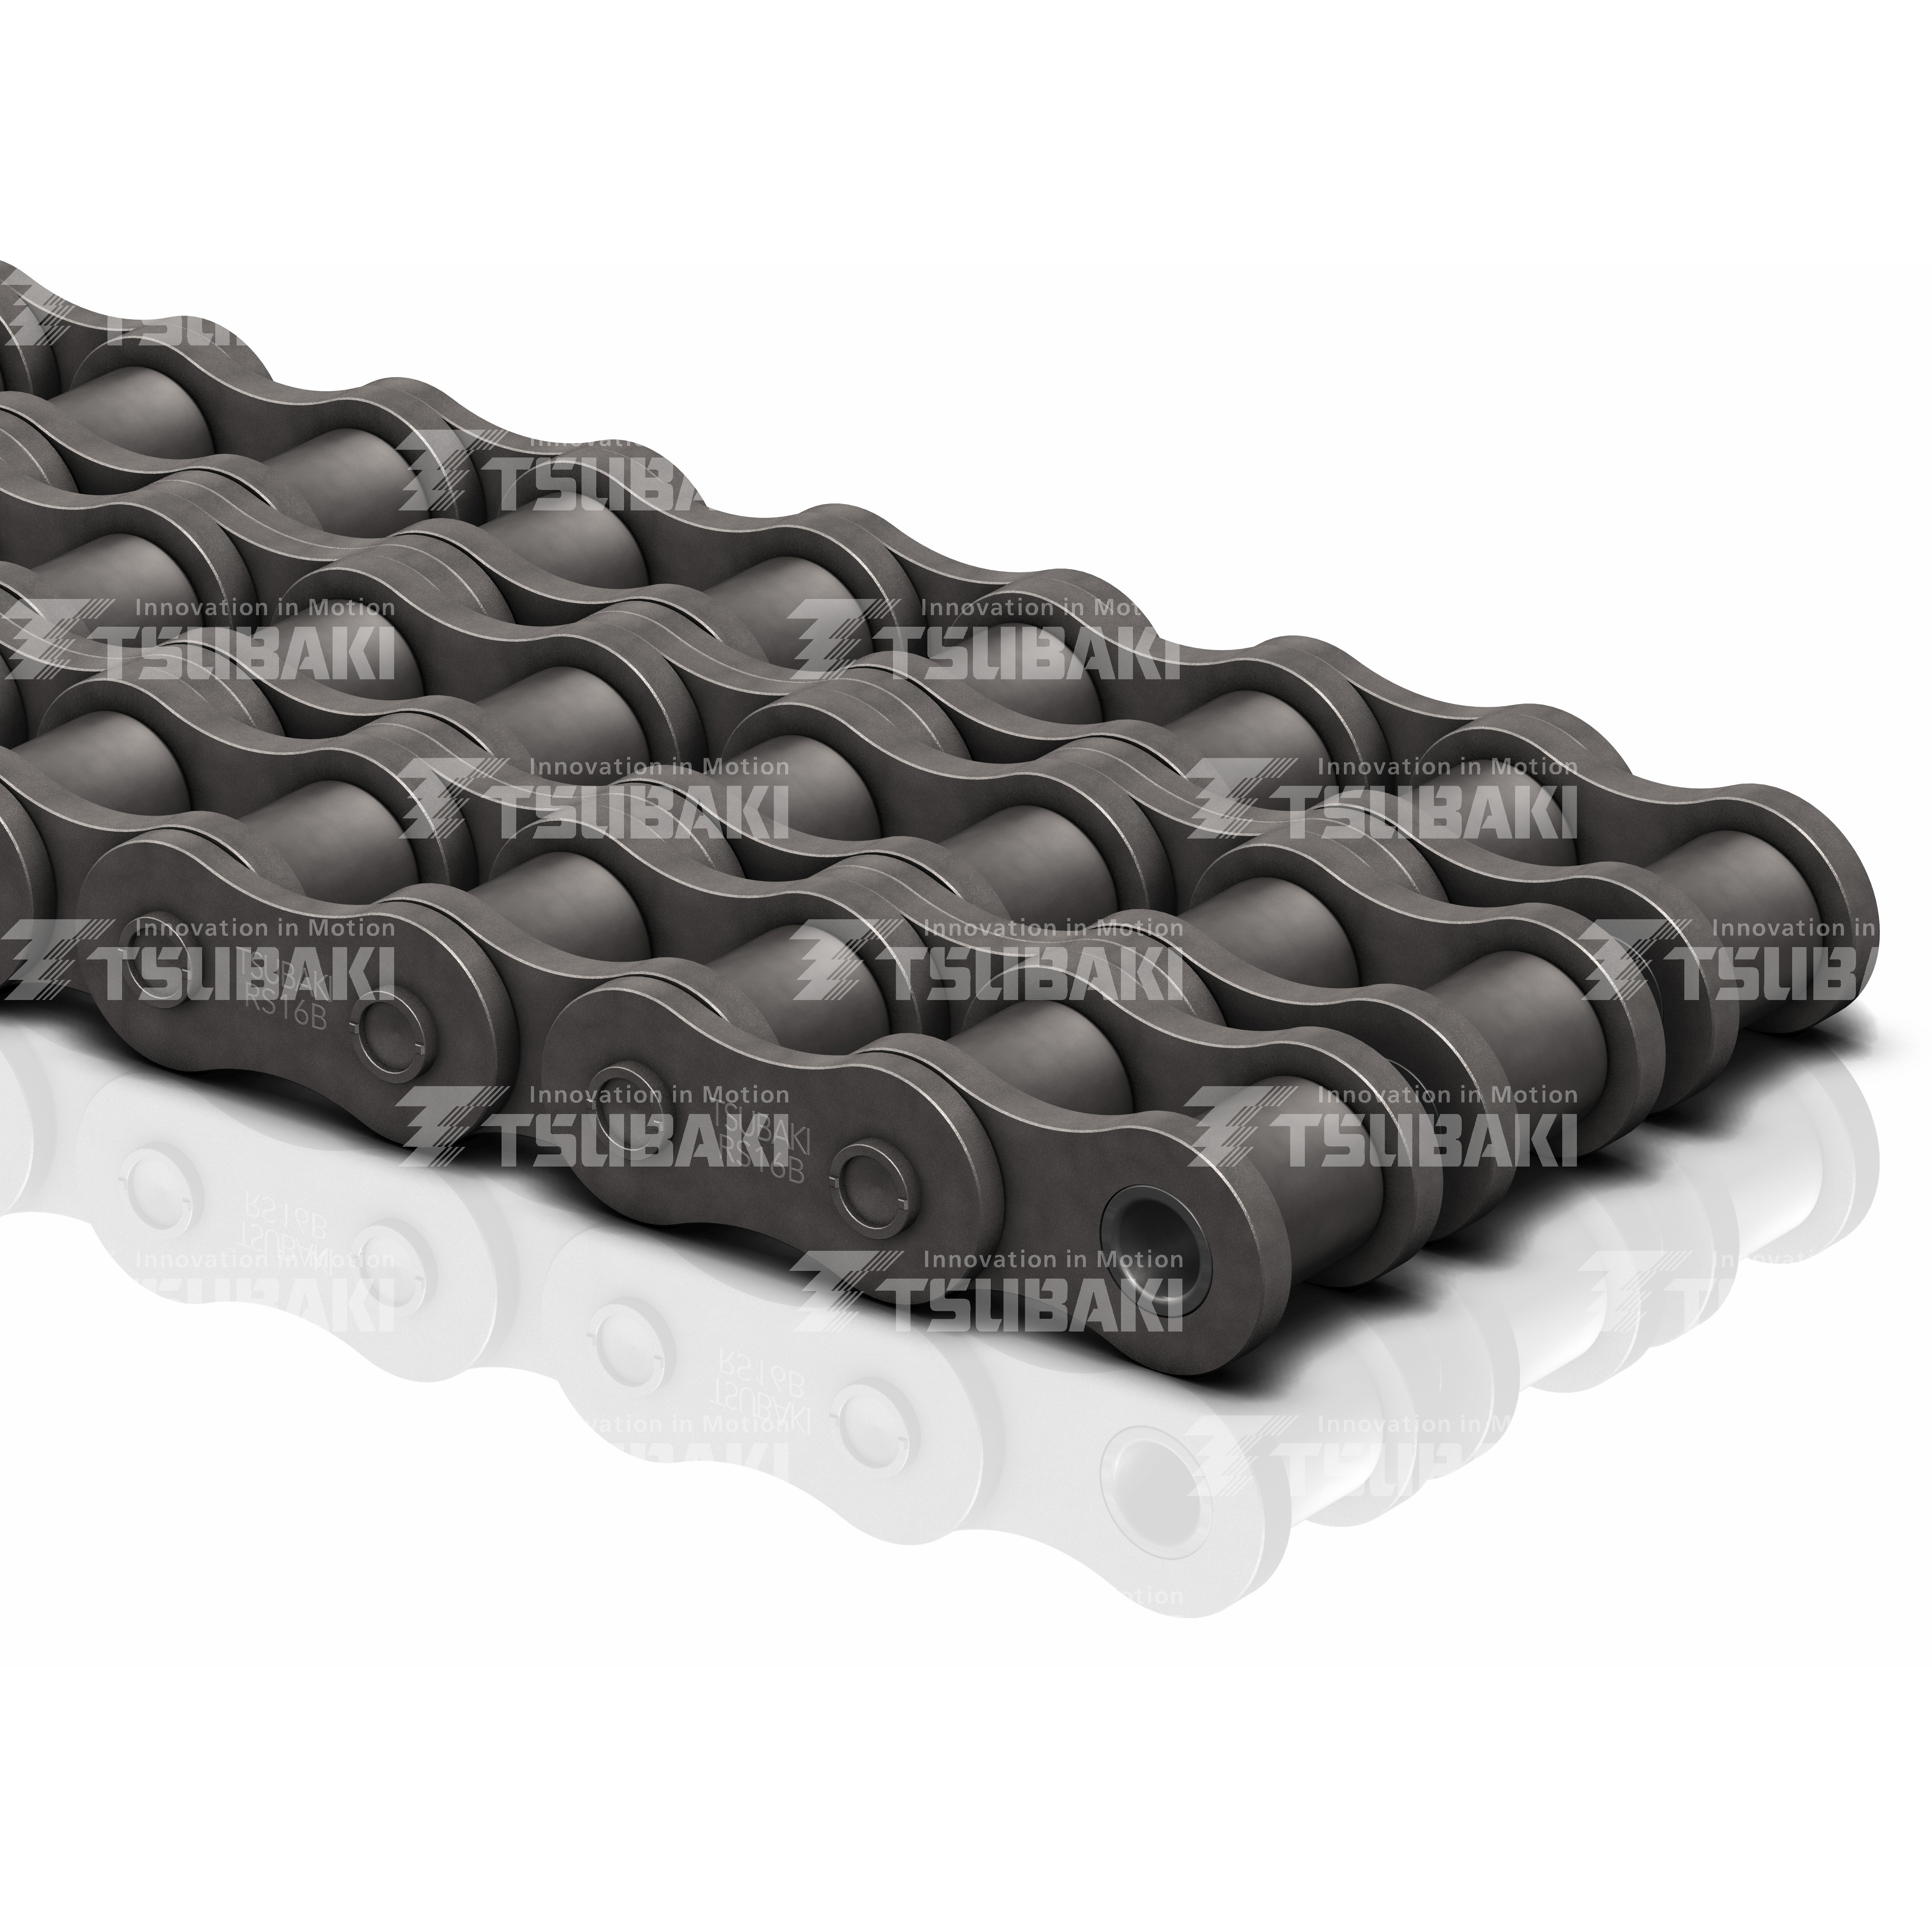 RS10B Triplex Chain 5 Metre Box